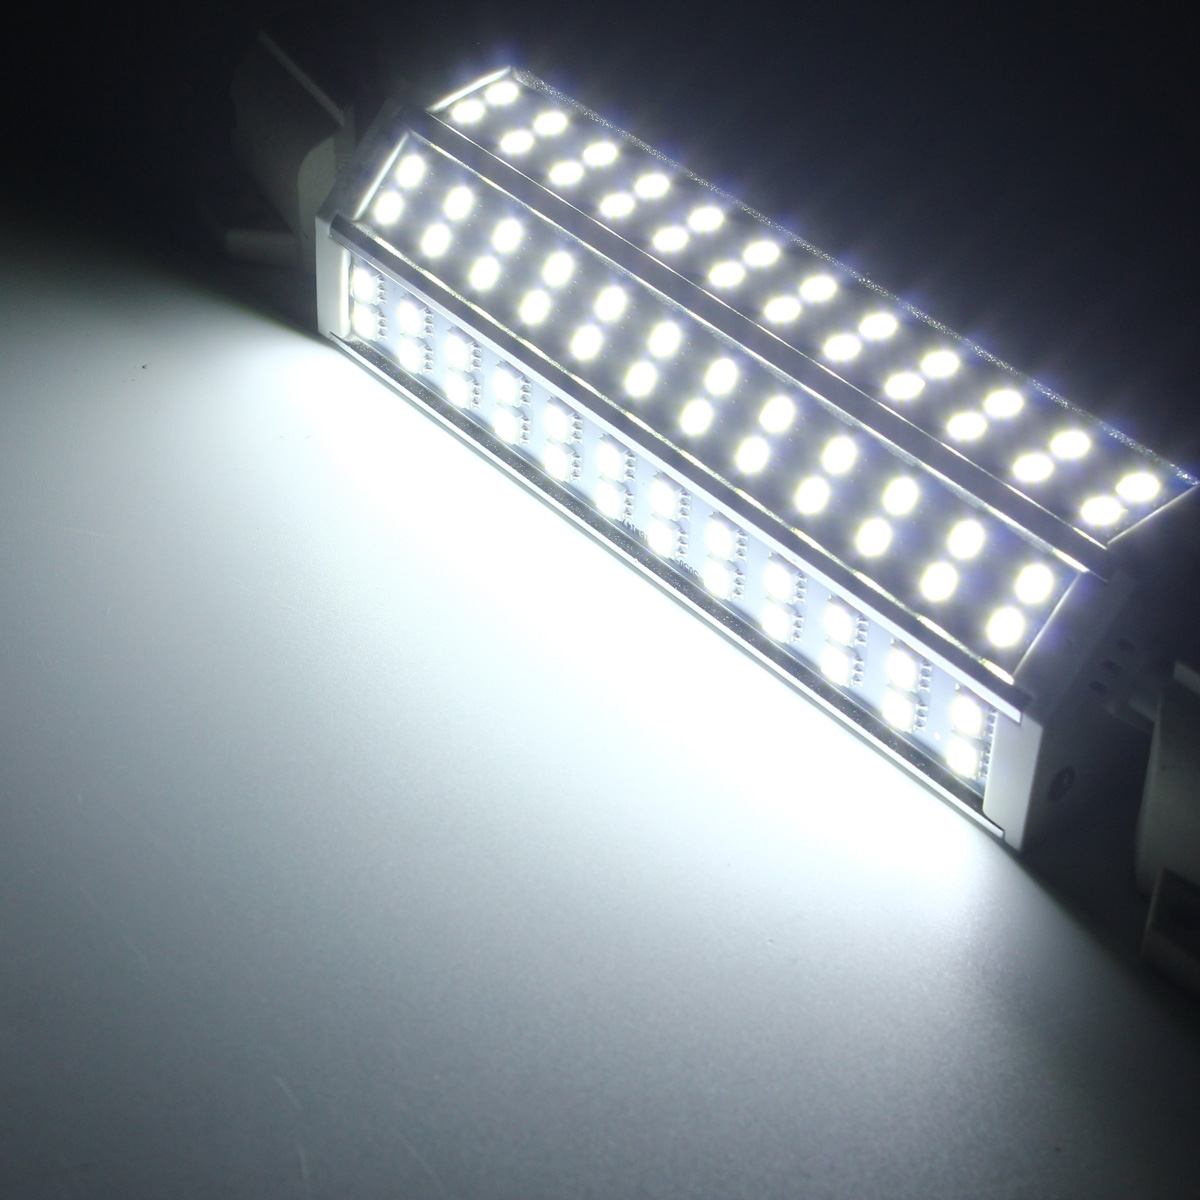 R7S 25W Non-Dimmable 189mm 72 SMD 5050 LED Corn Bulb Flood Light Halogen Lamp AC 85-265V